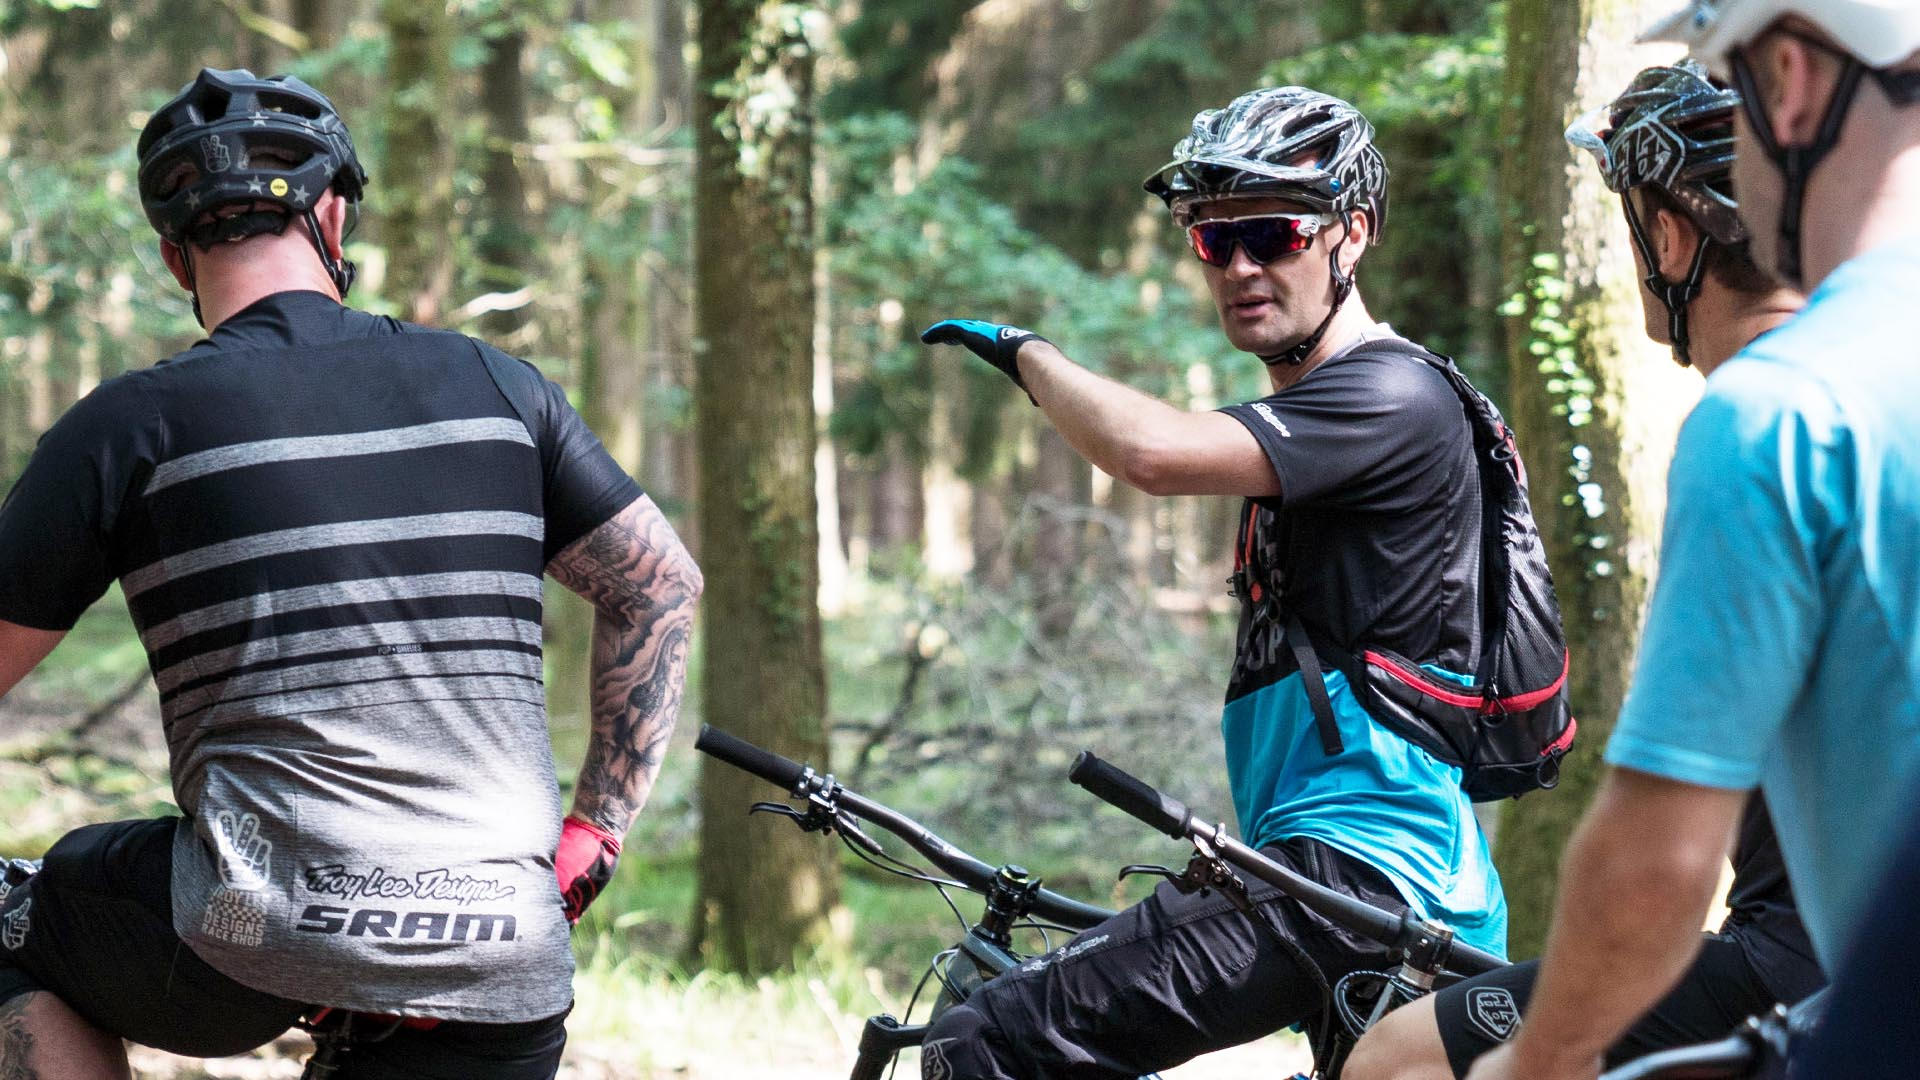 +3 Coach Alan Milway talking riders through body weight positioning during an event in the Forest of Dean